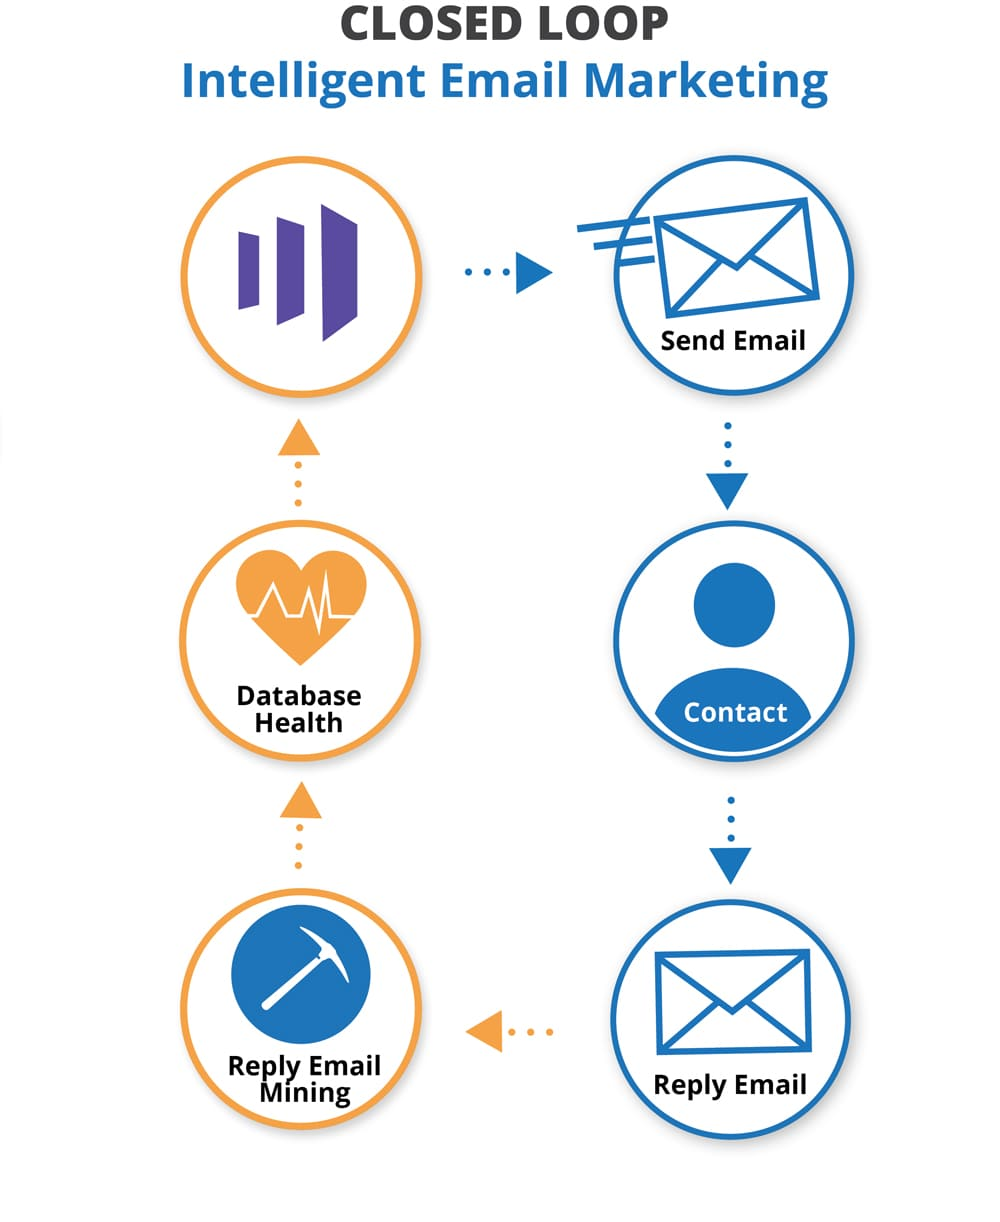 Closed Loop Intelligent Email Marketing